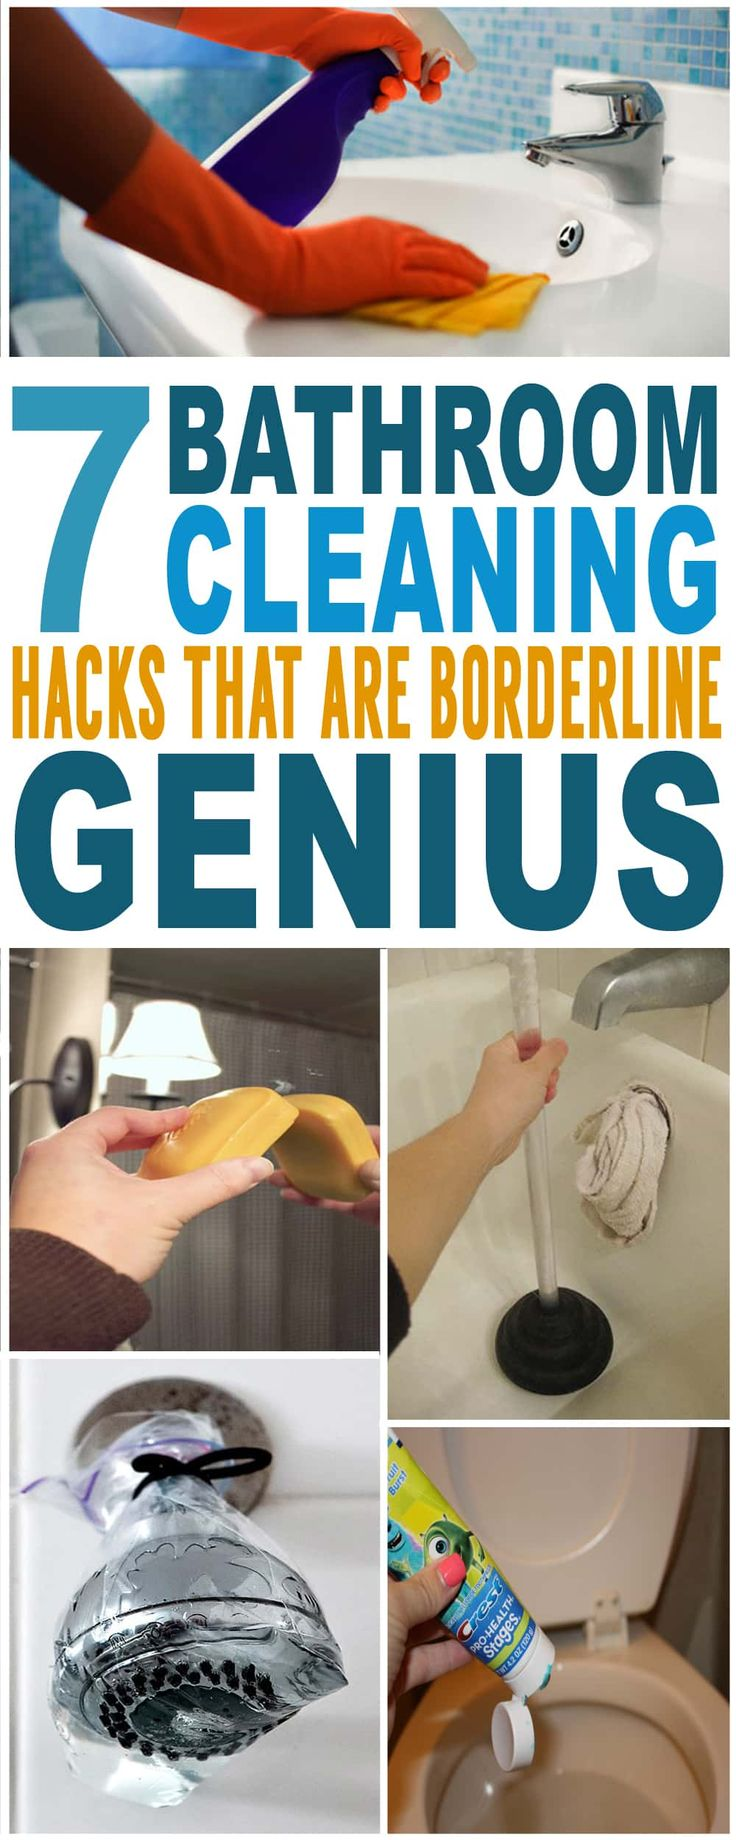 These are the BEST bathroom cleaning hacks!! Glad to have found these amazing bathroom cleaning tips and tricks. Pinning for sure.